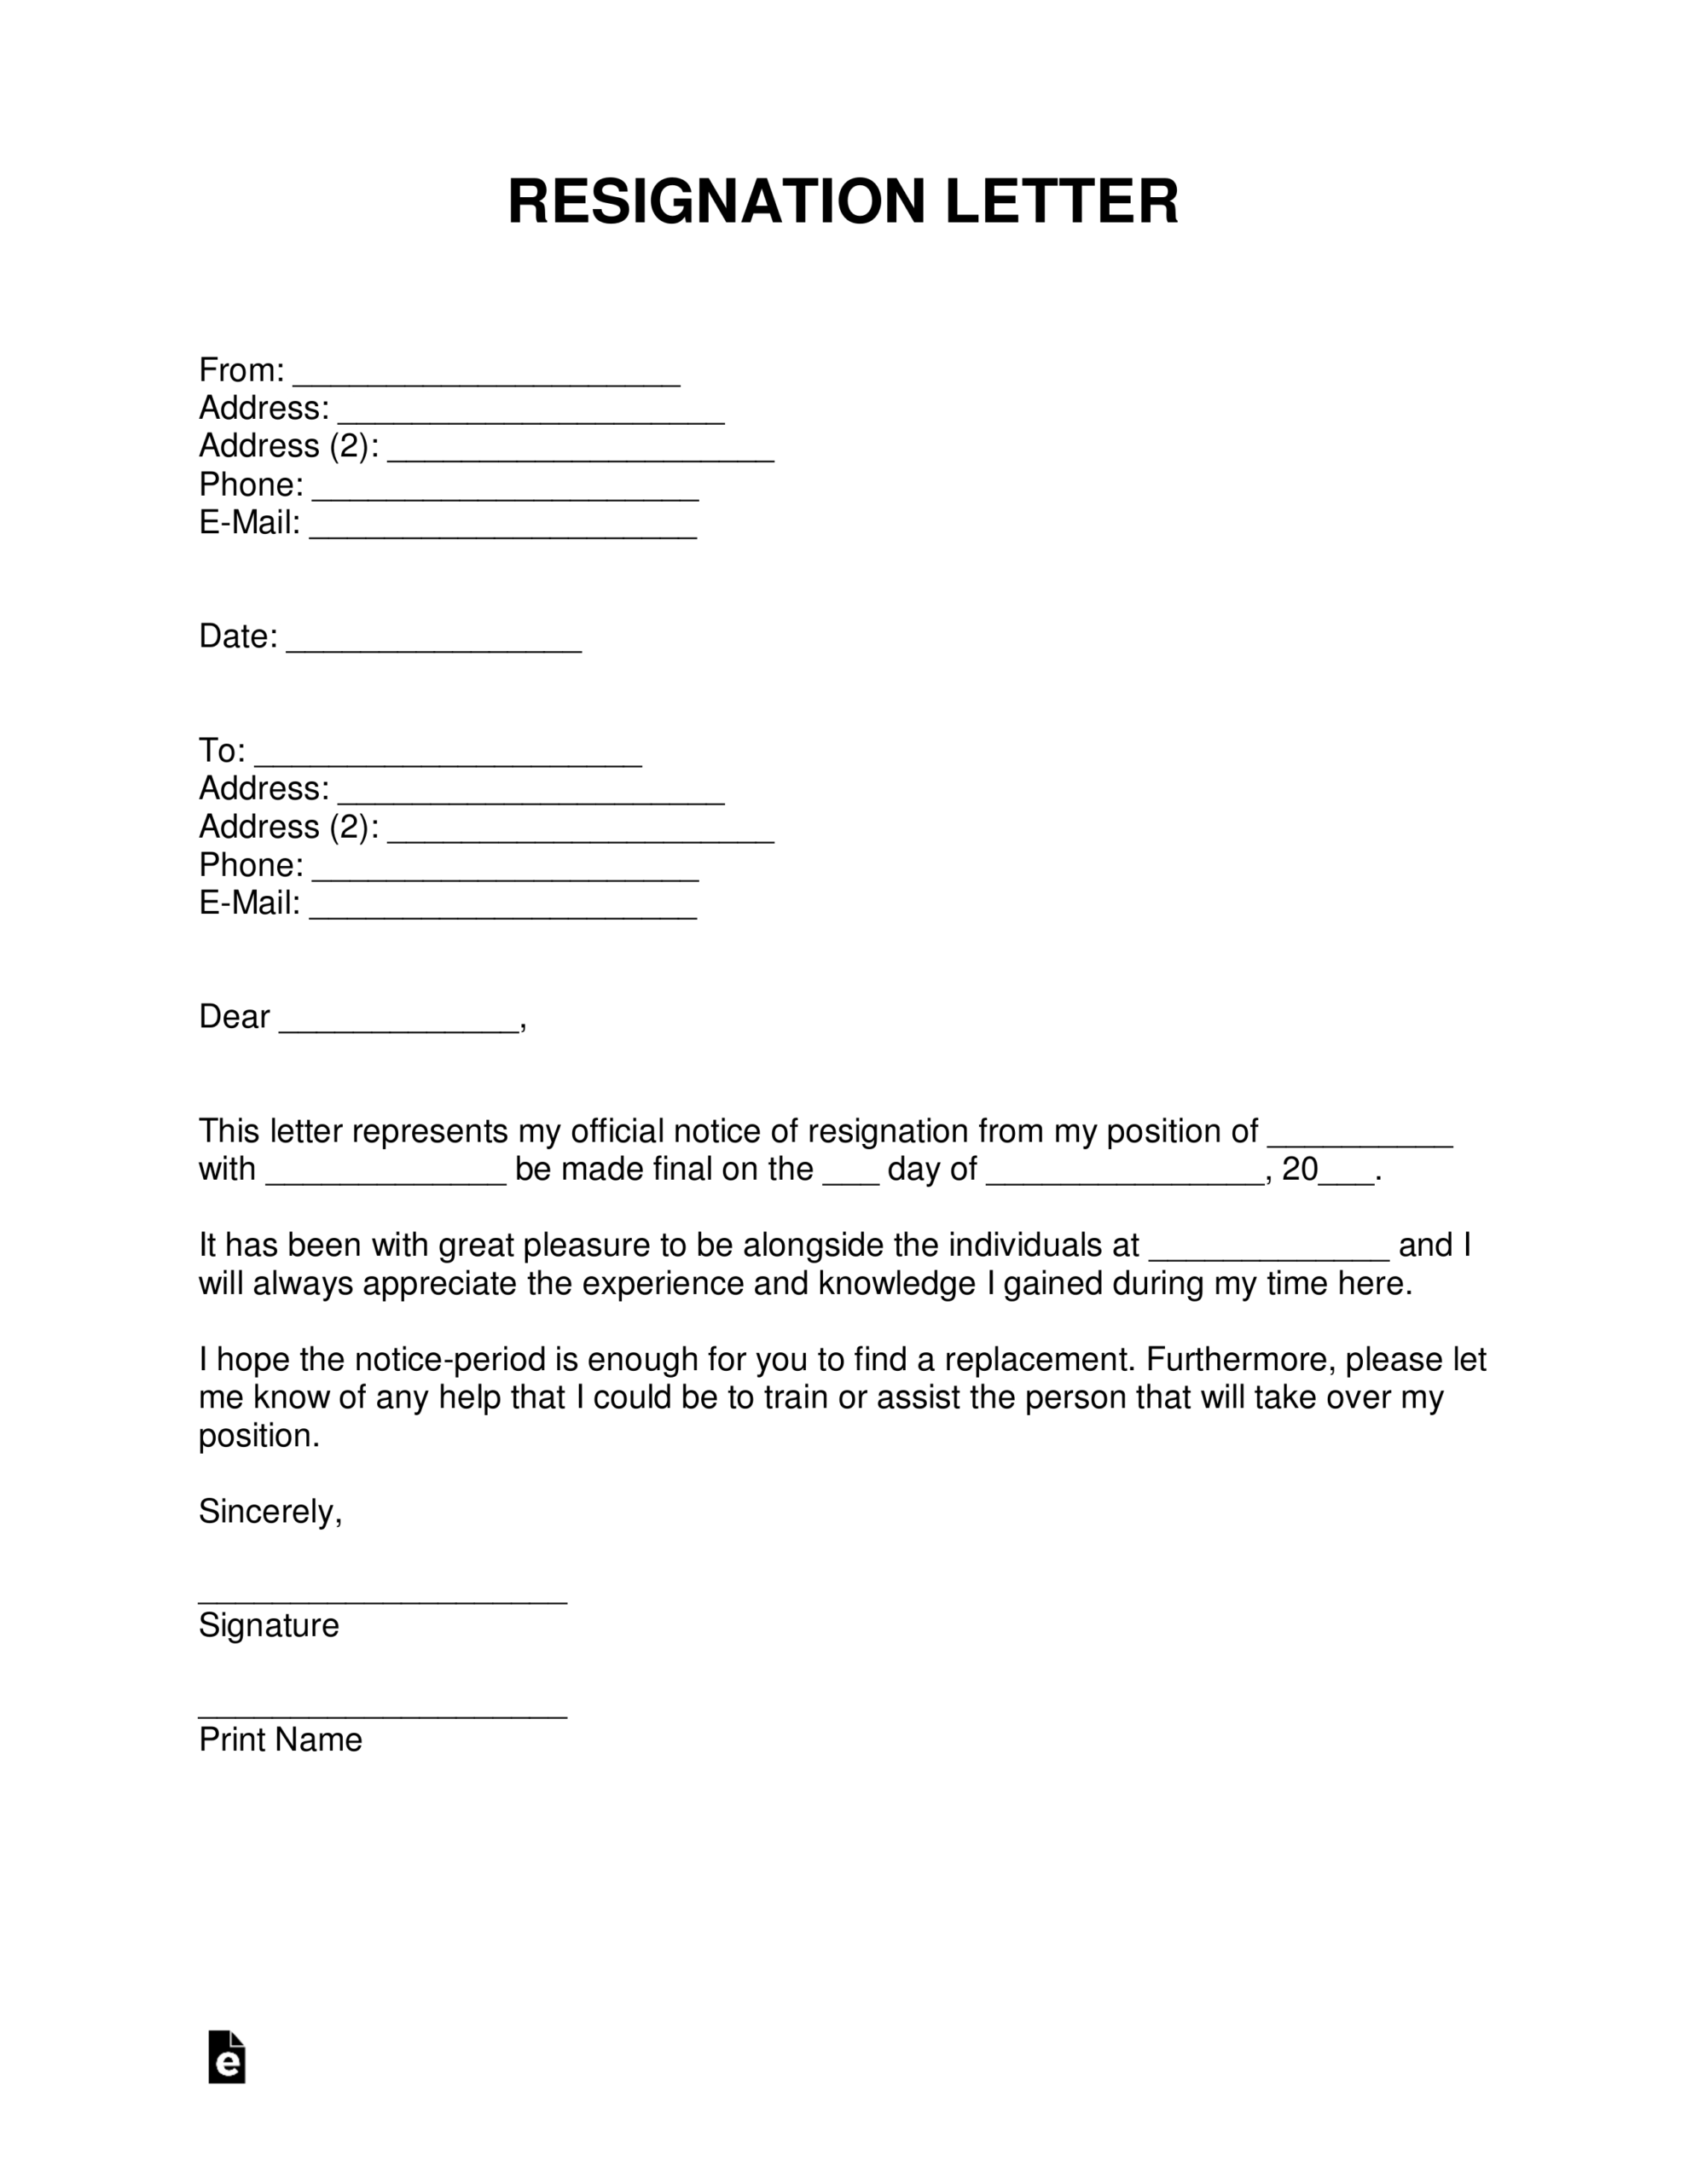 Free Resignation Letters | Templates & Samples - Pdf | Word For 2 Weeks Notice Template Word